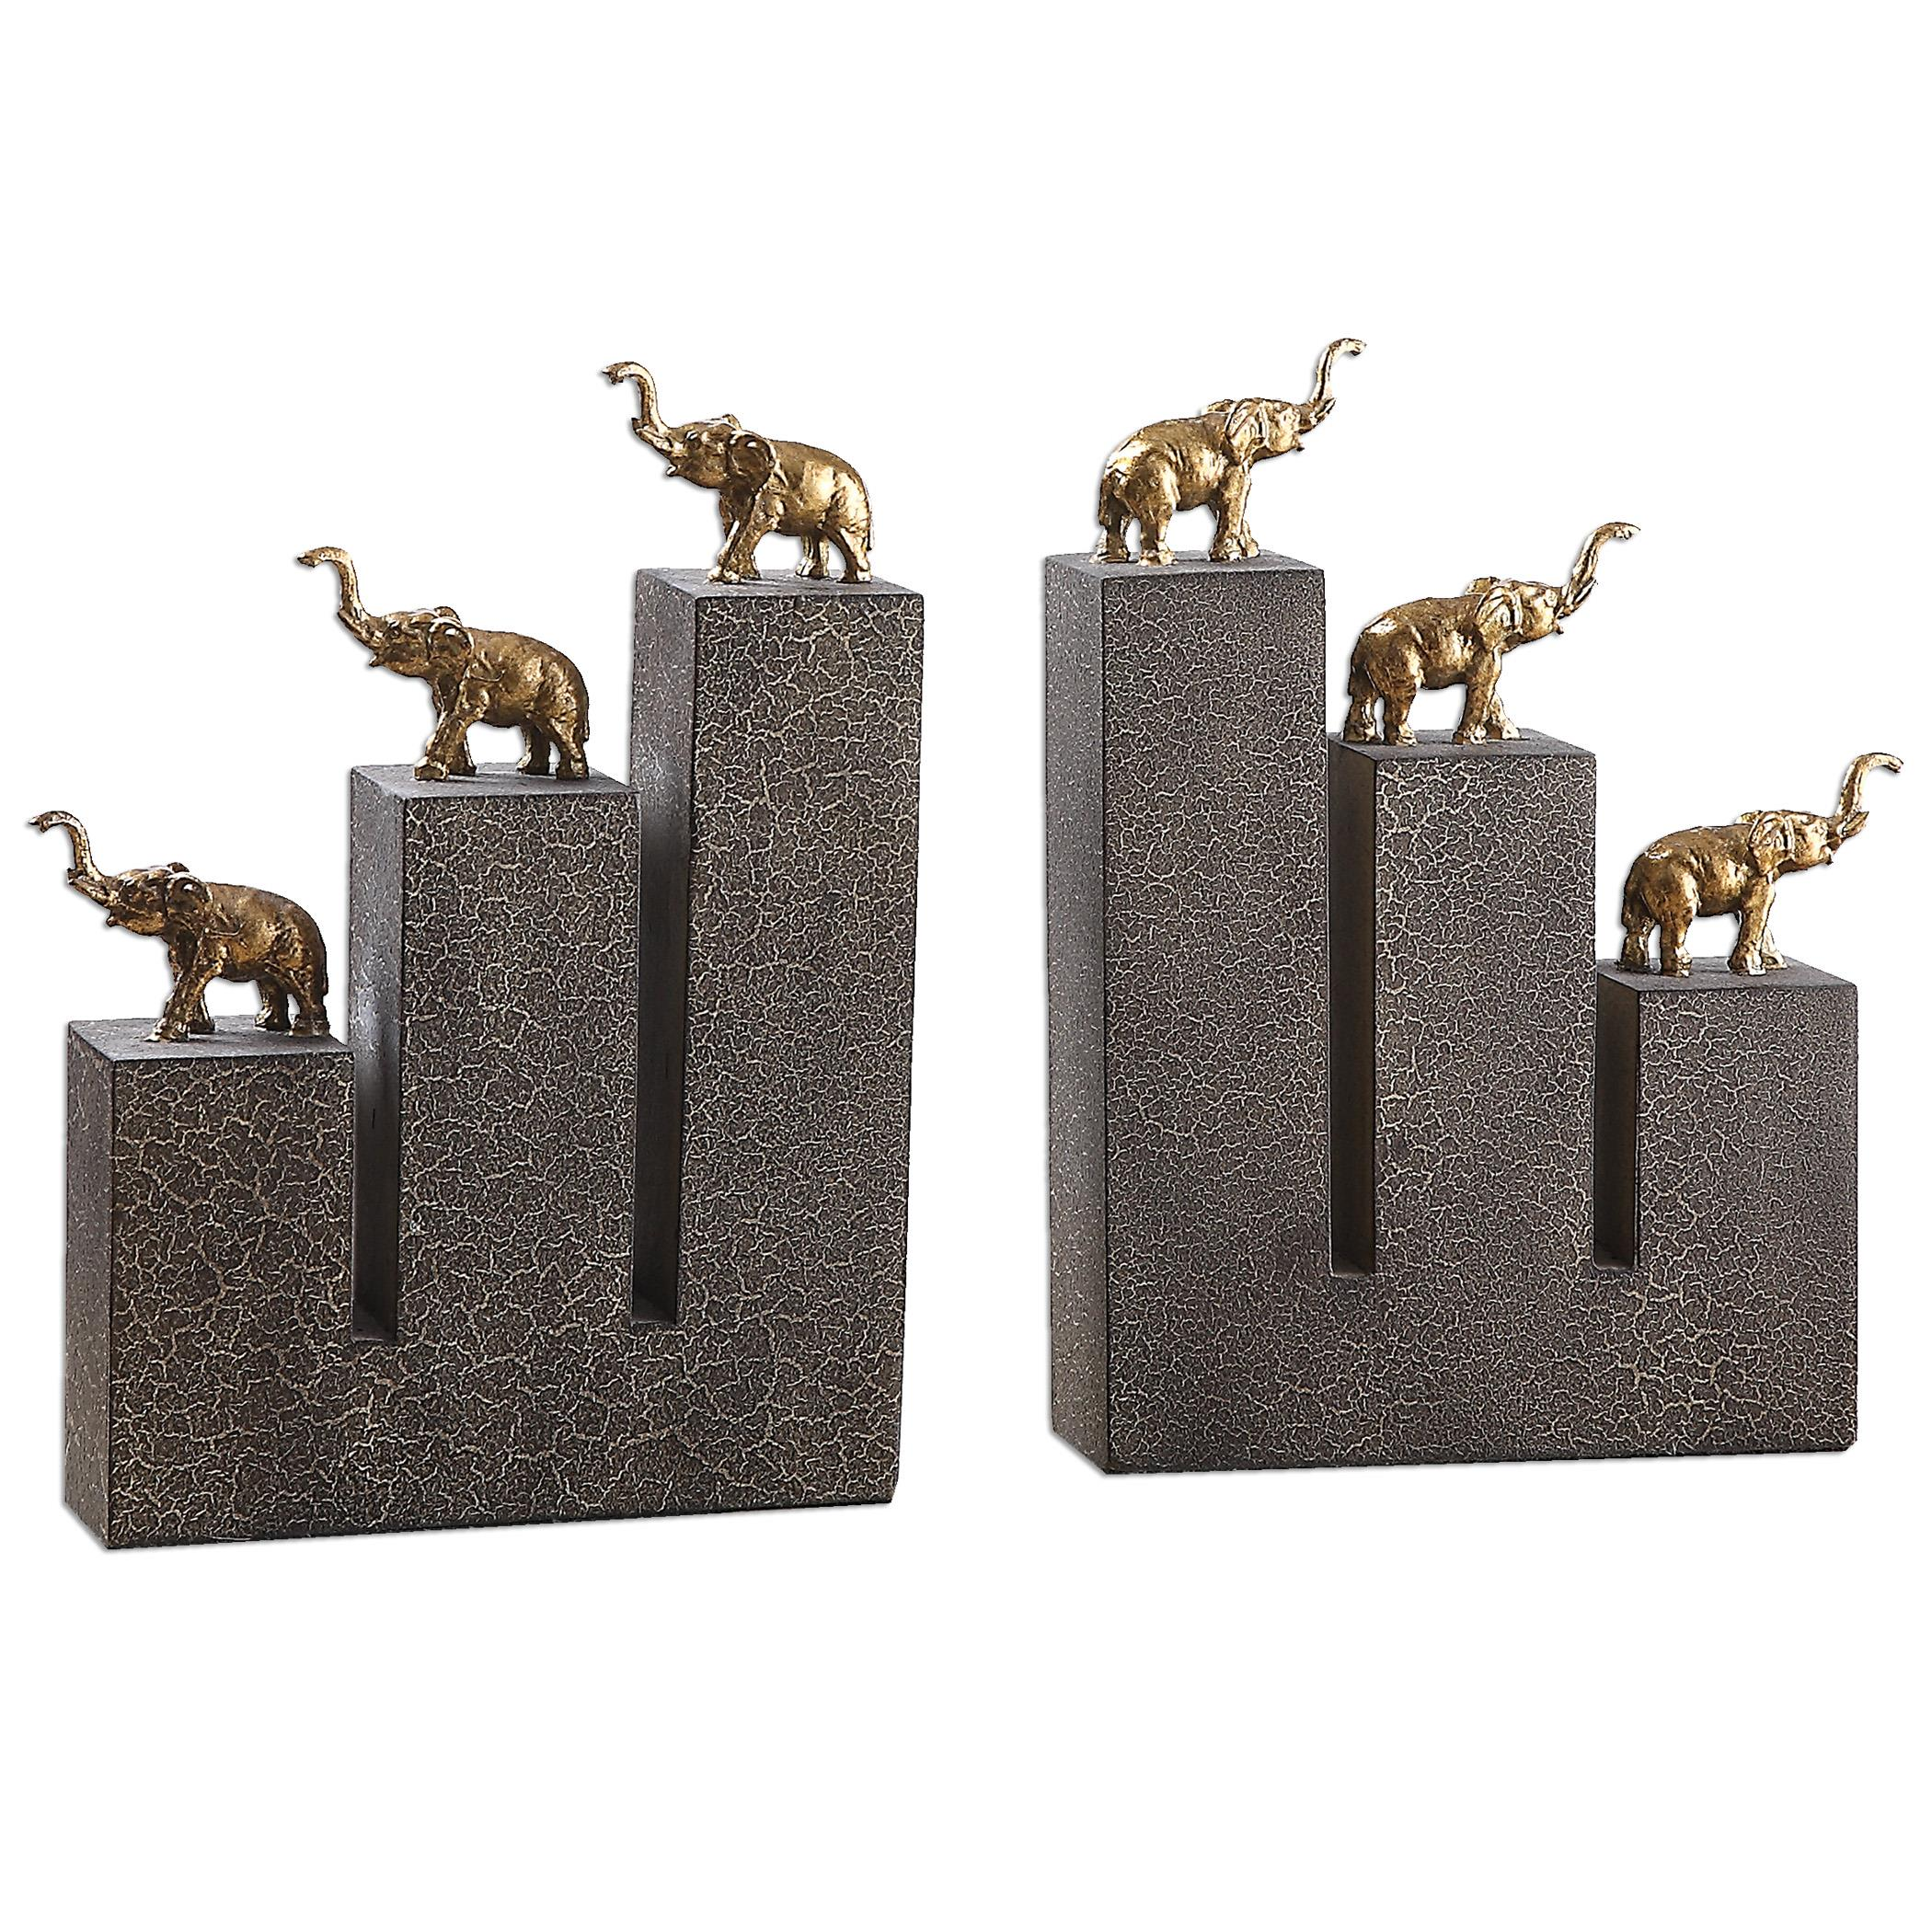 Uttermost Accessories Elephant Bookends, S/2 - Item Number: 19979